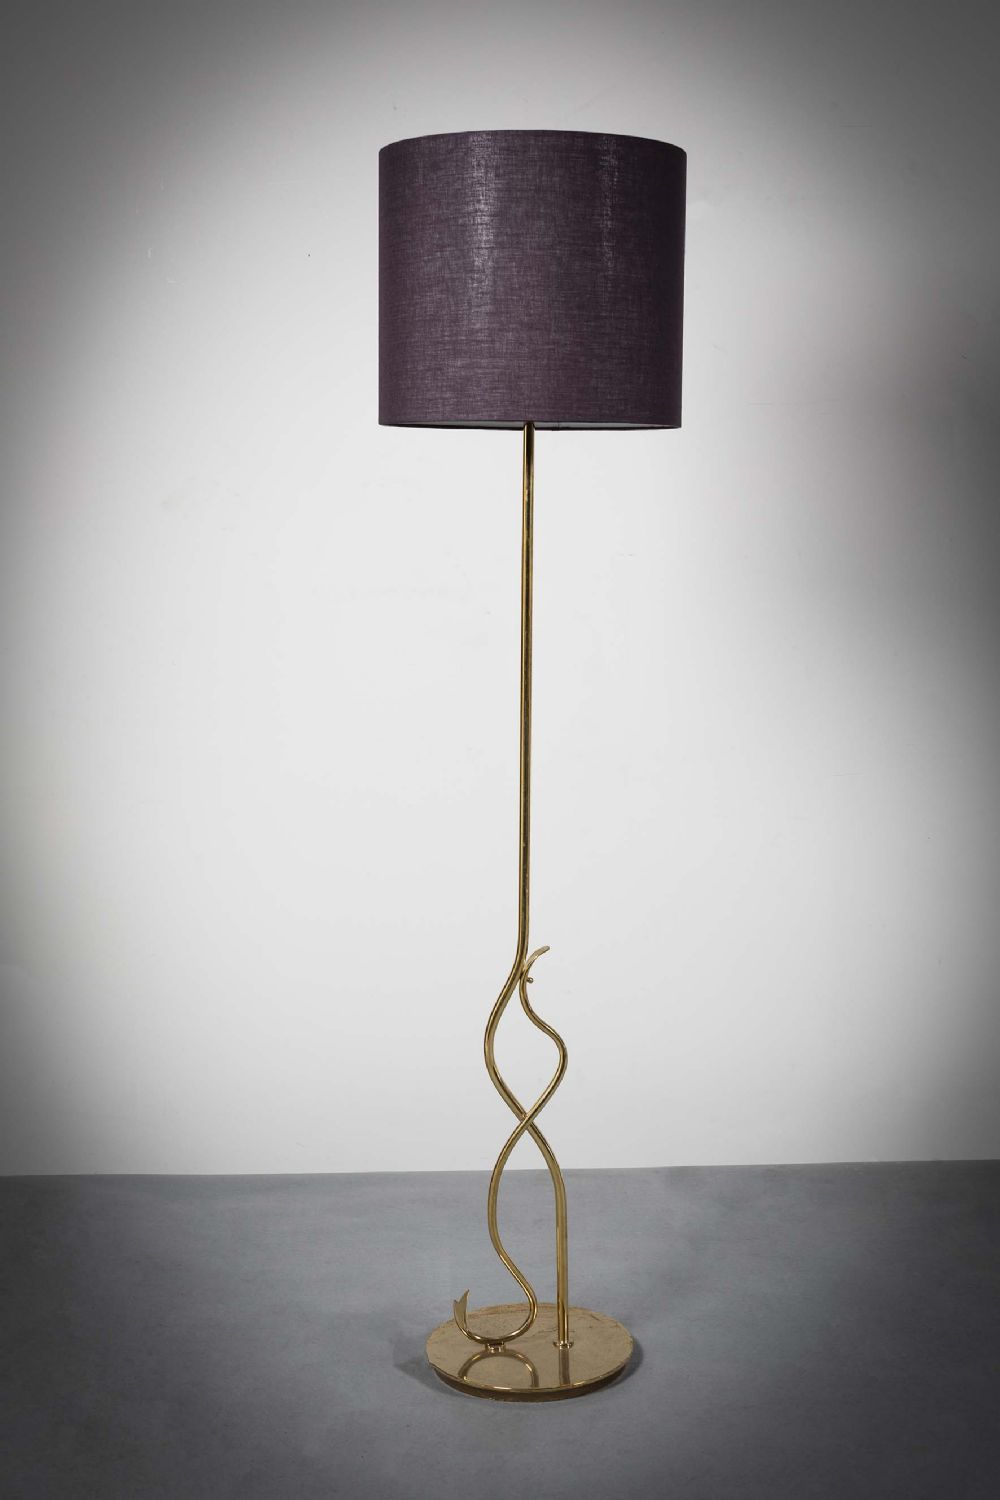 A GILT STANDARD LAMP at deVeres Auctions